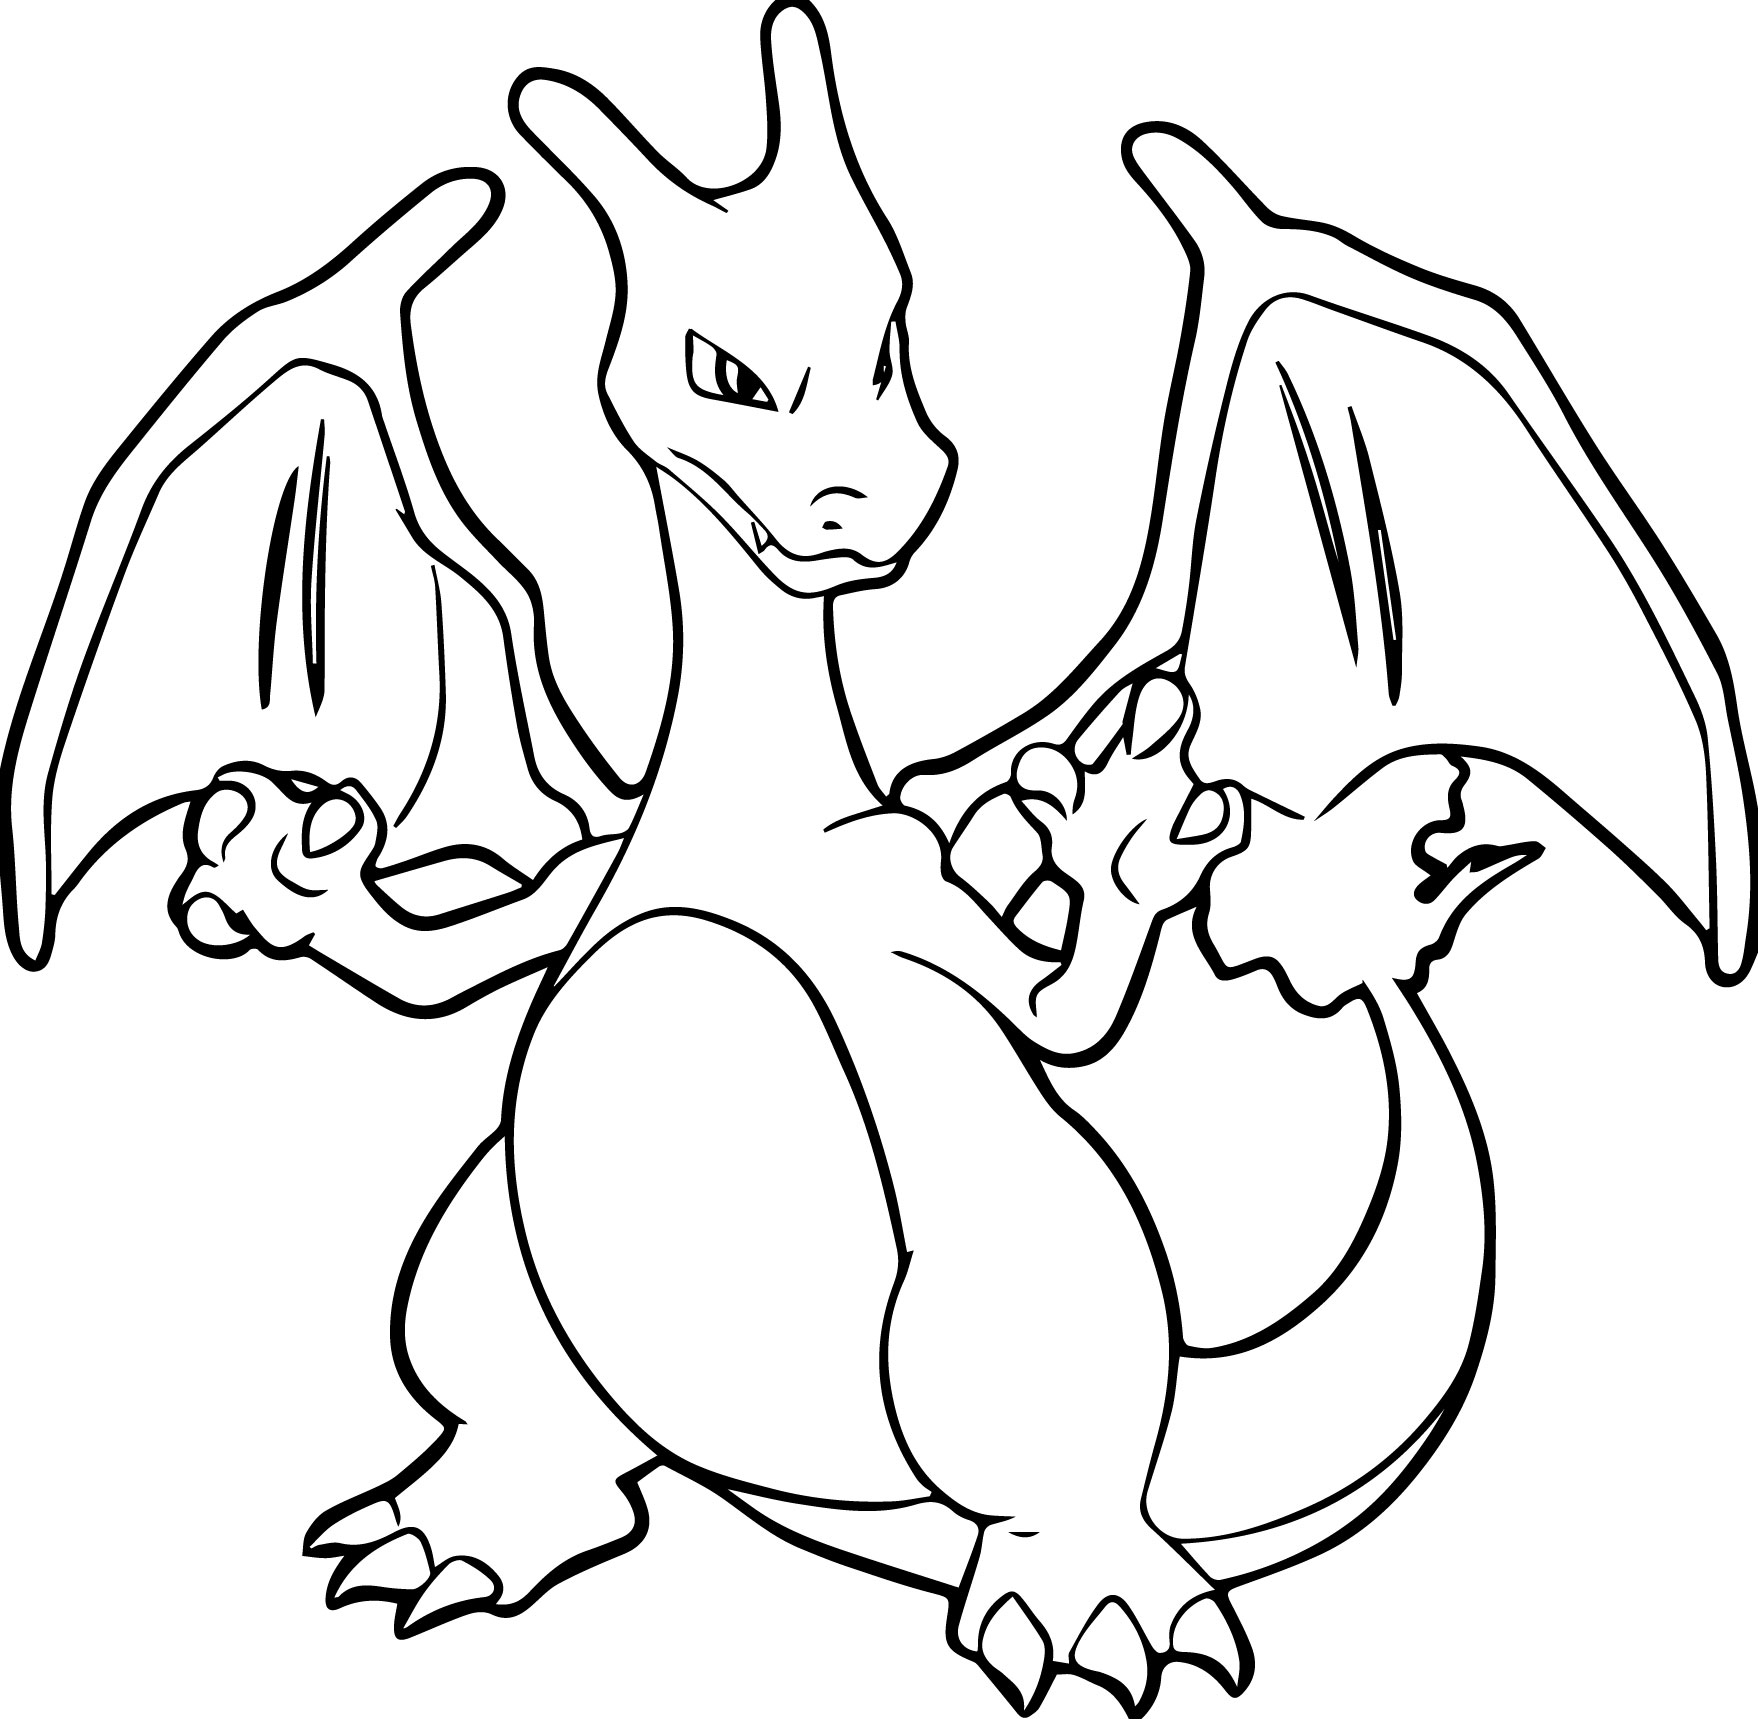 charizard coloring pages - photo#4